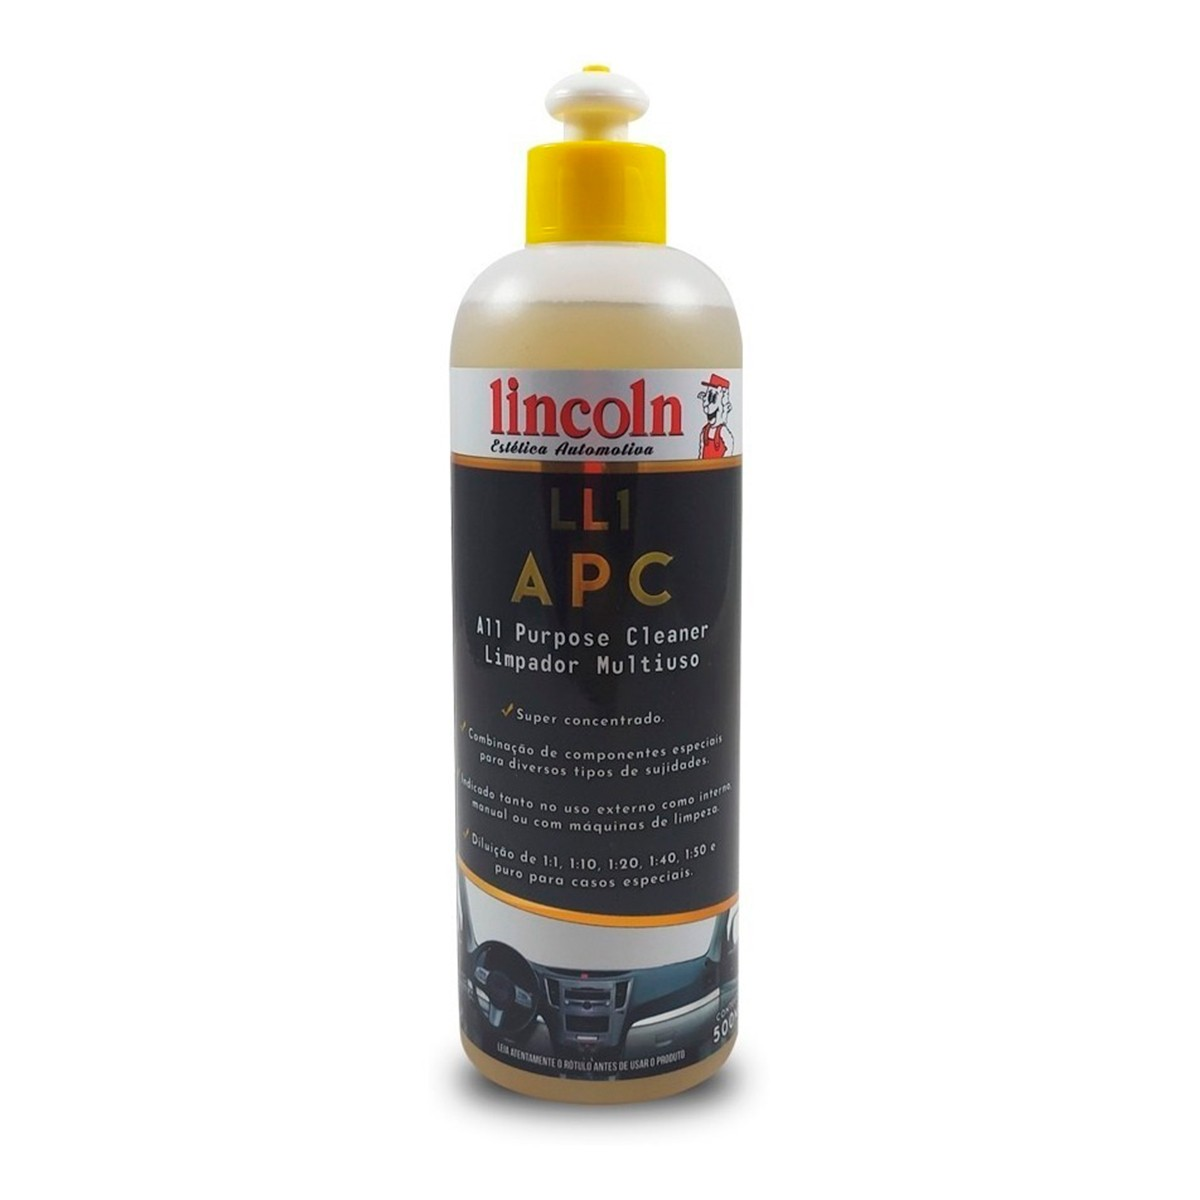 LL1 APC 500ml Limpador Multiuso - Lincoln